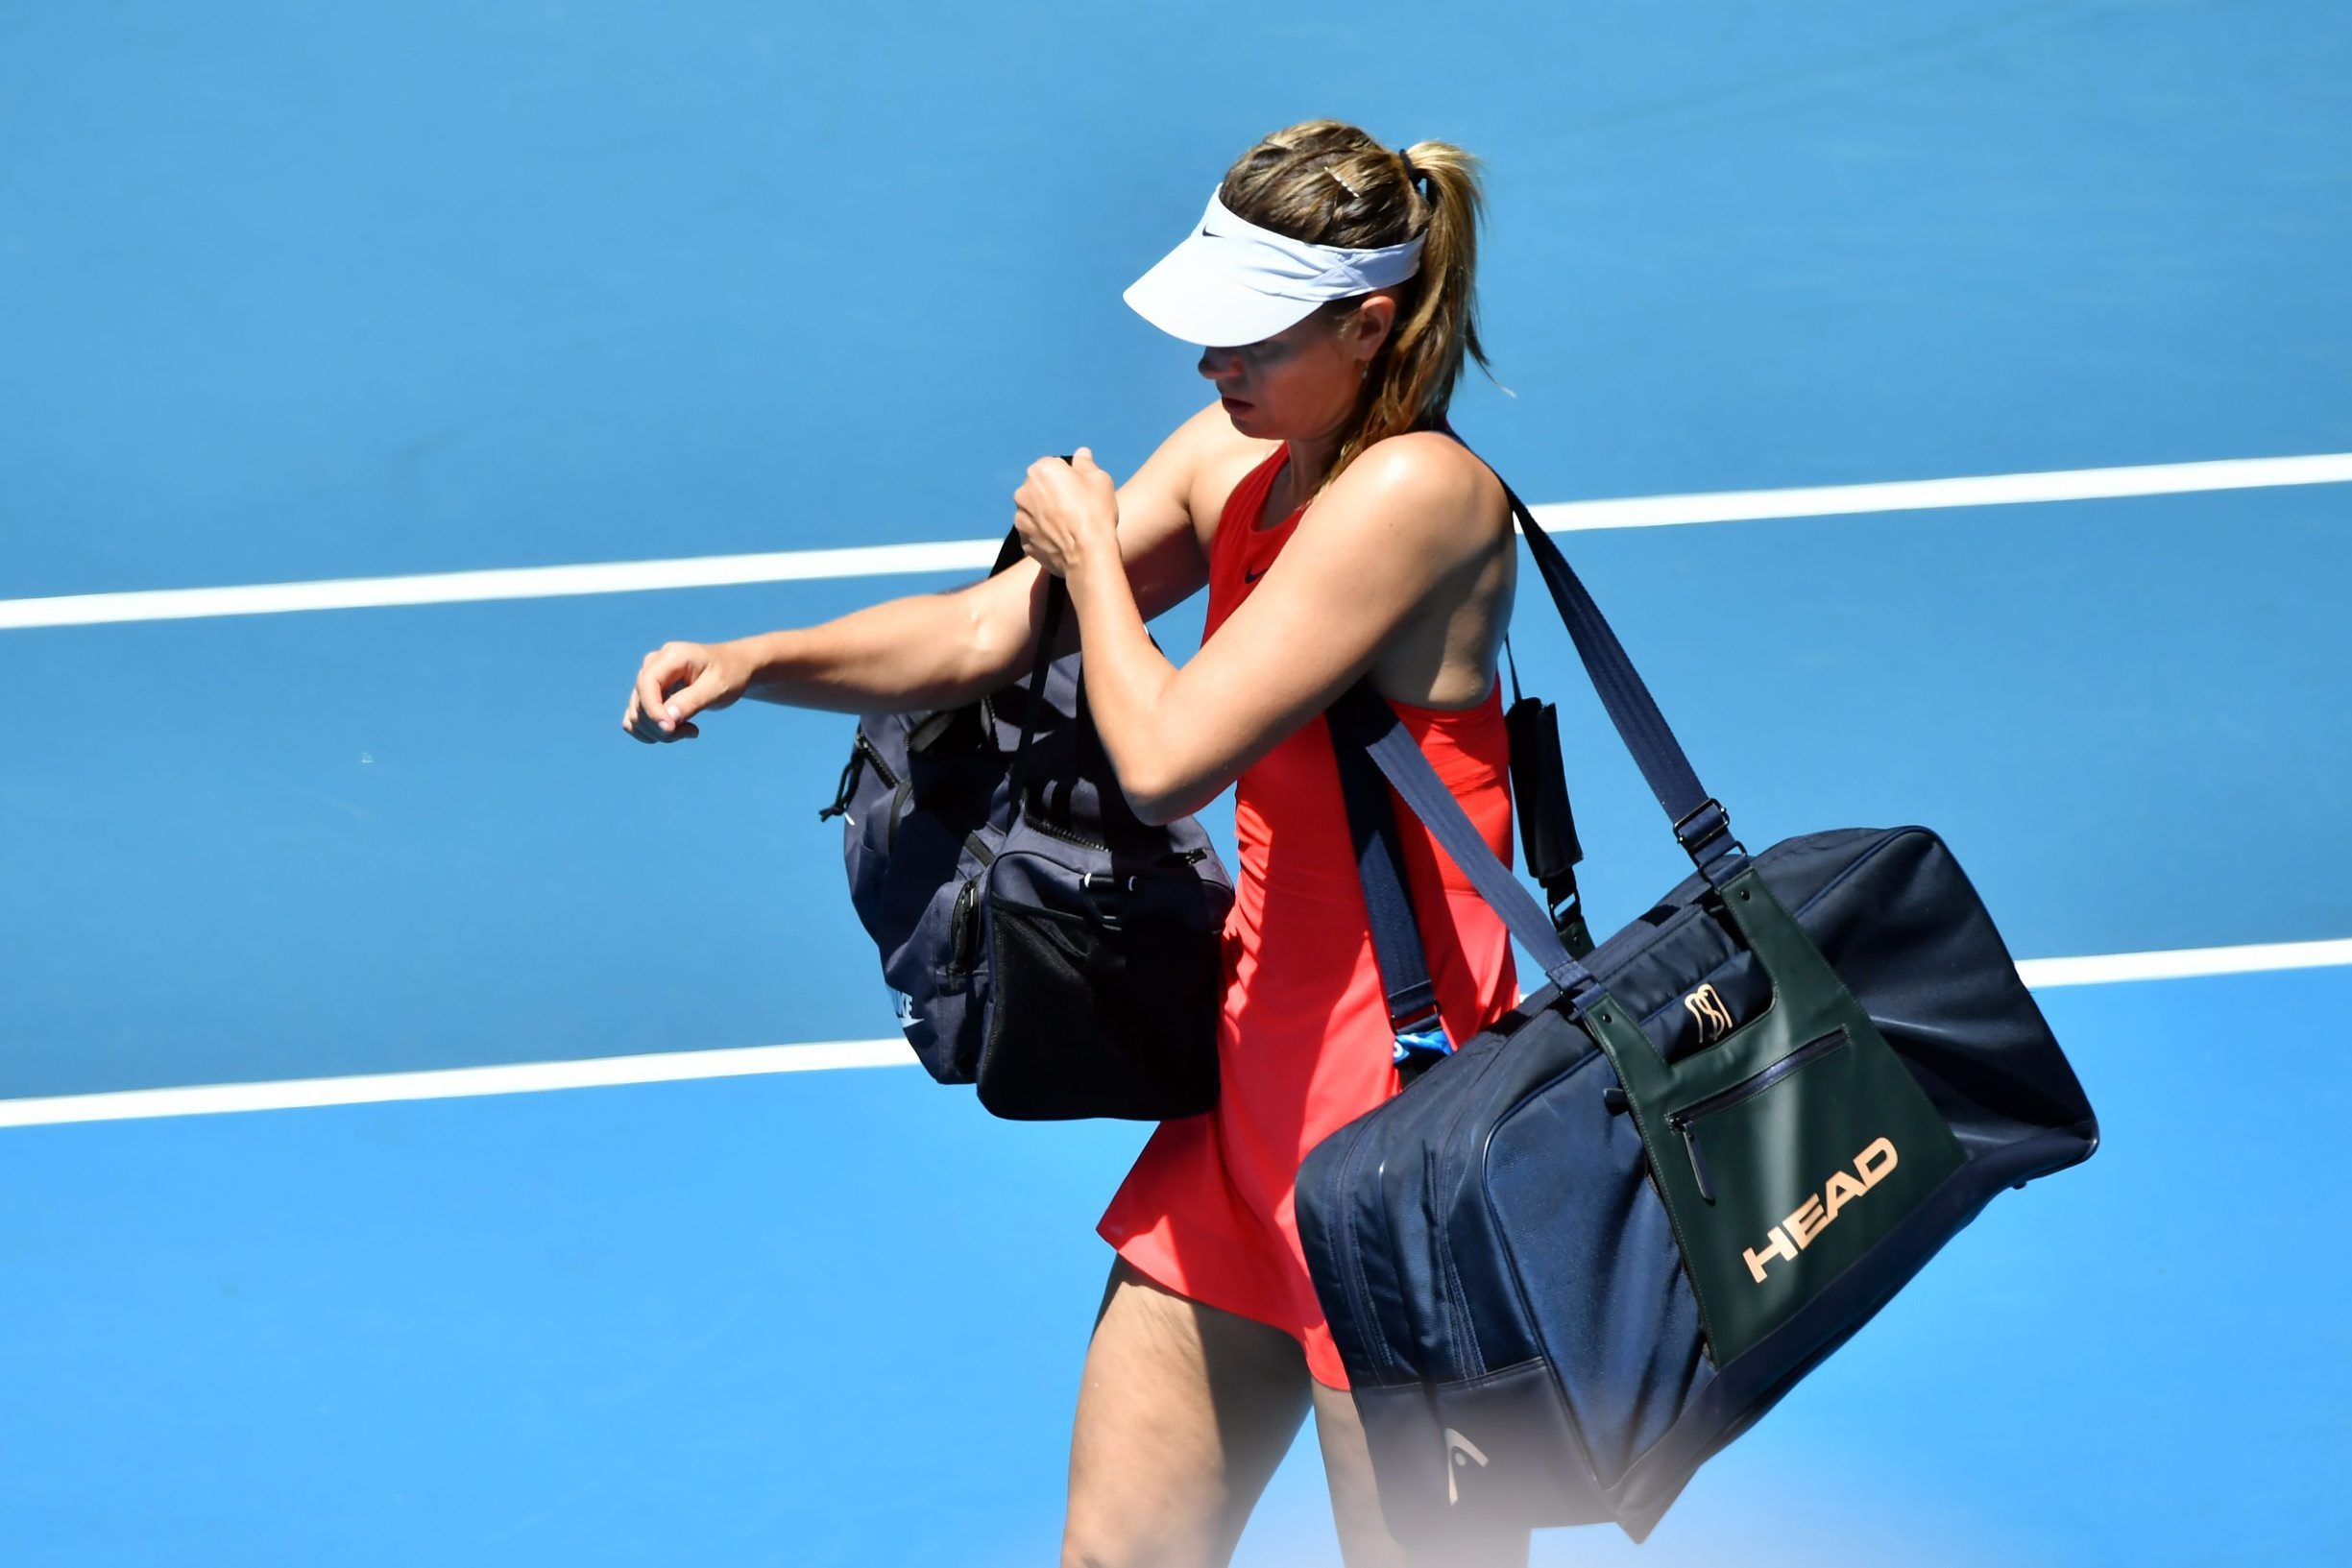 Russia's Maria Sharapova (R) leaves after her defeat against Croatia's Donna Vekic during their women's singles match on day two of the Australian Open tennis tournament in Melbourne on January 21, 2020 (Photo by John DONEGAN / AFP) / IMAGE RESTRICTED TO EDITORIAL USE - STRICTLY NO COMMERCIAL USE